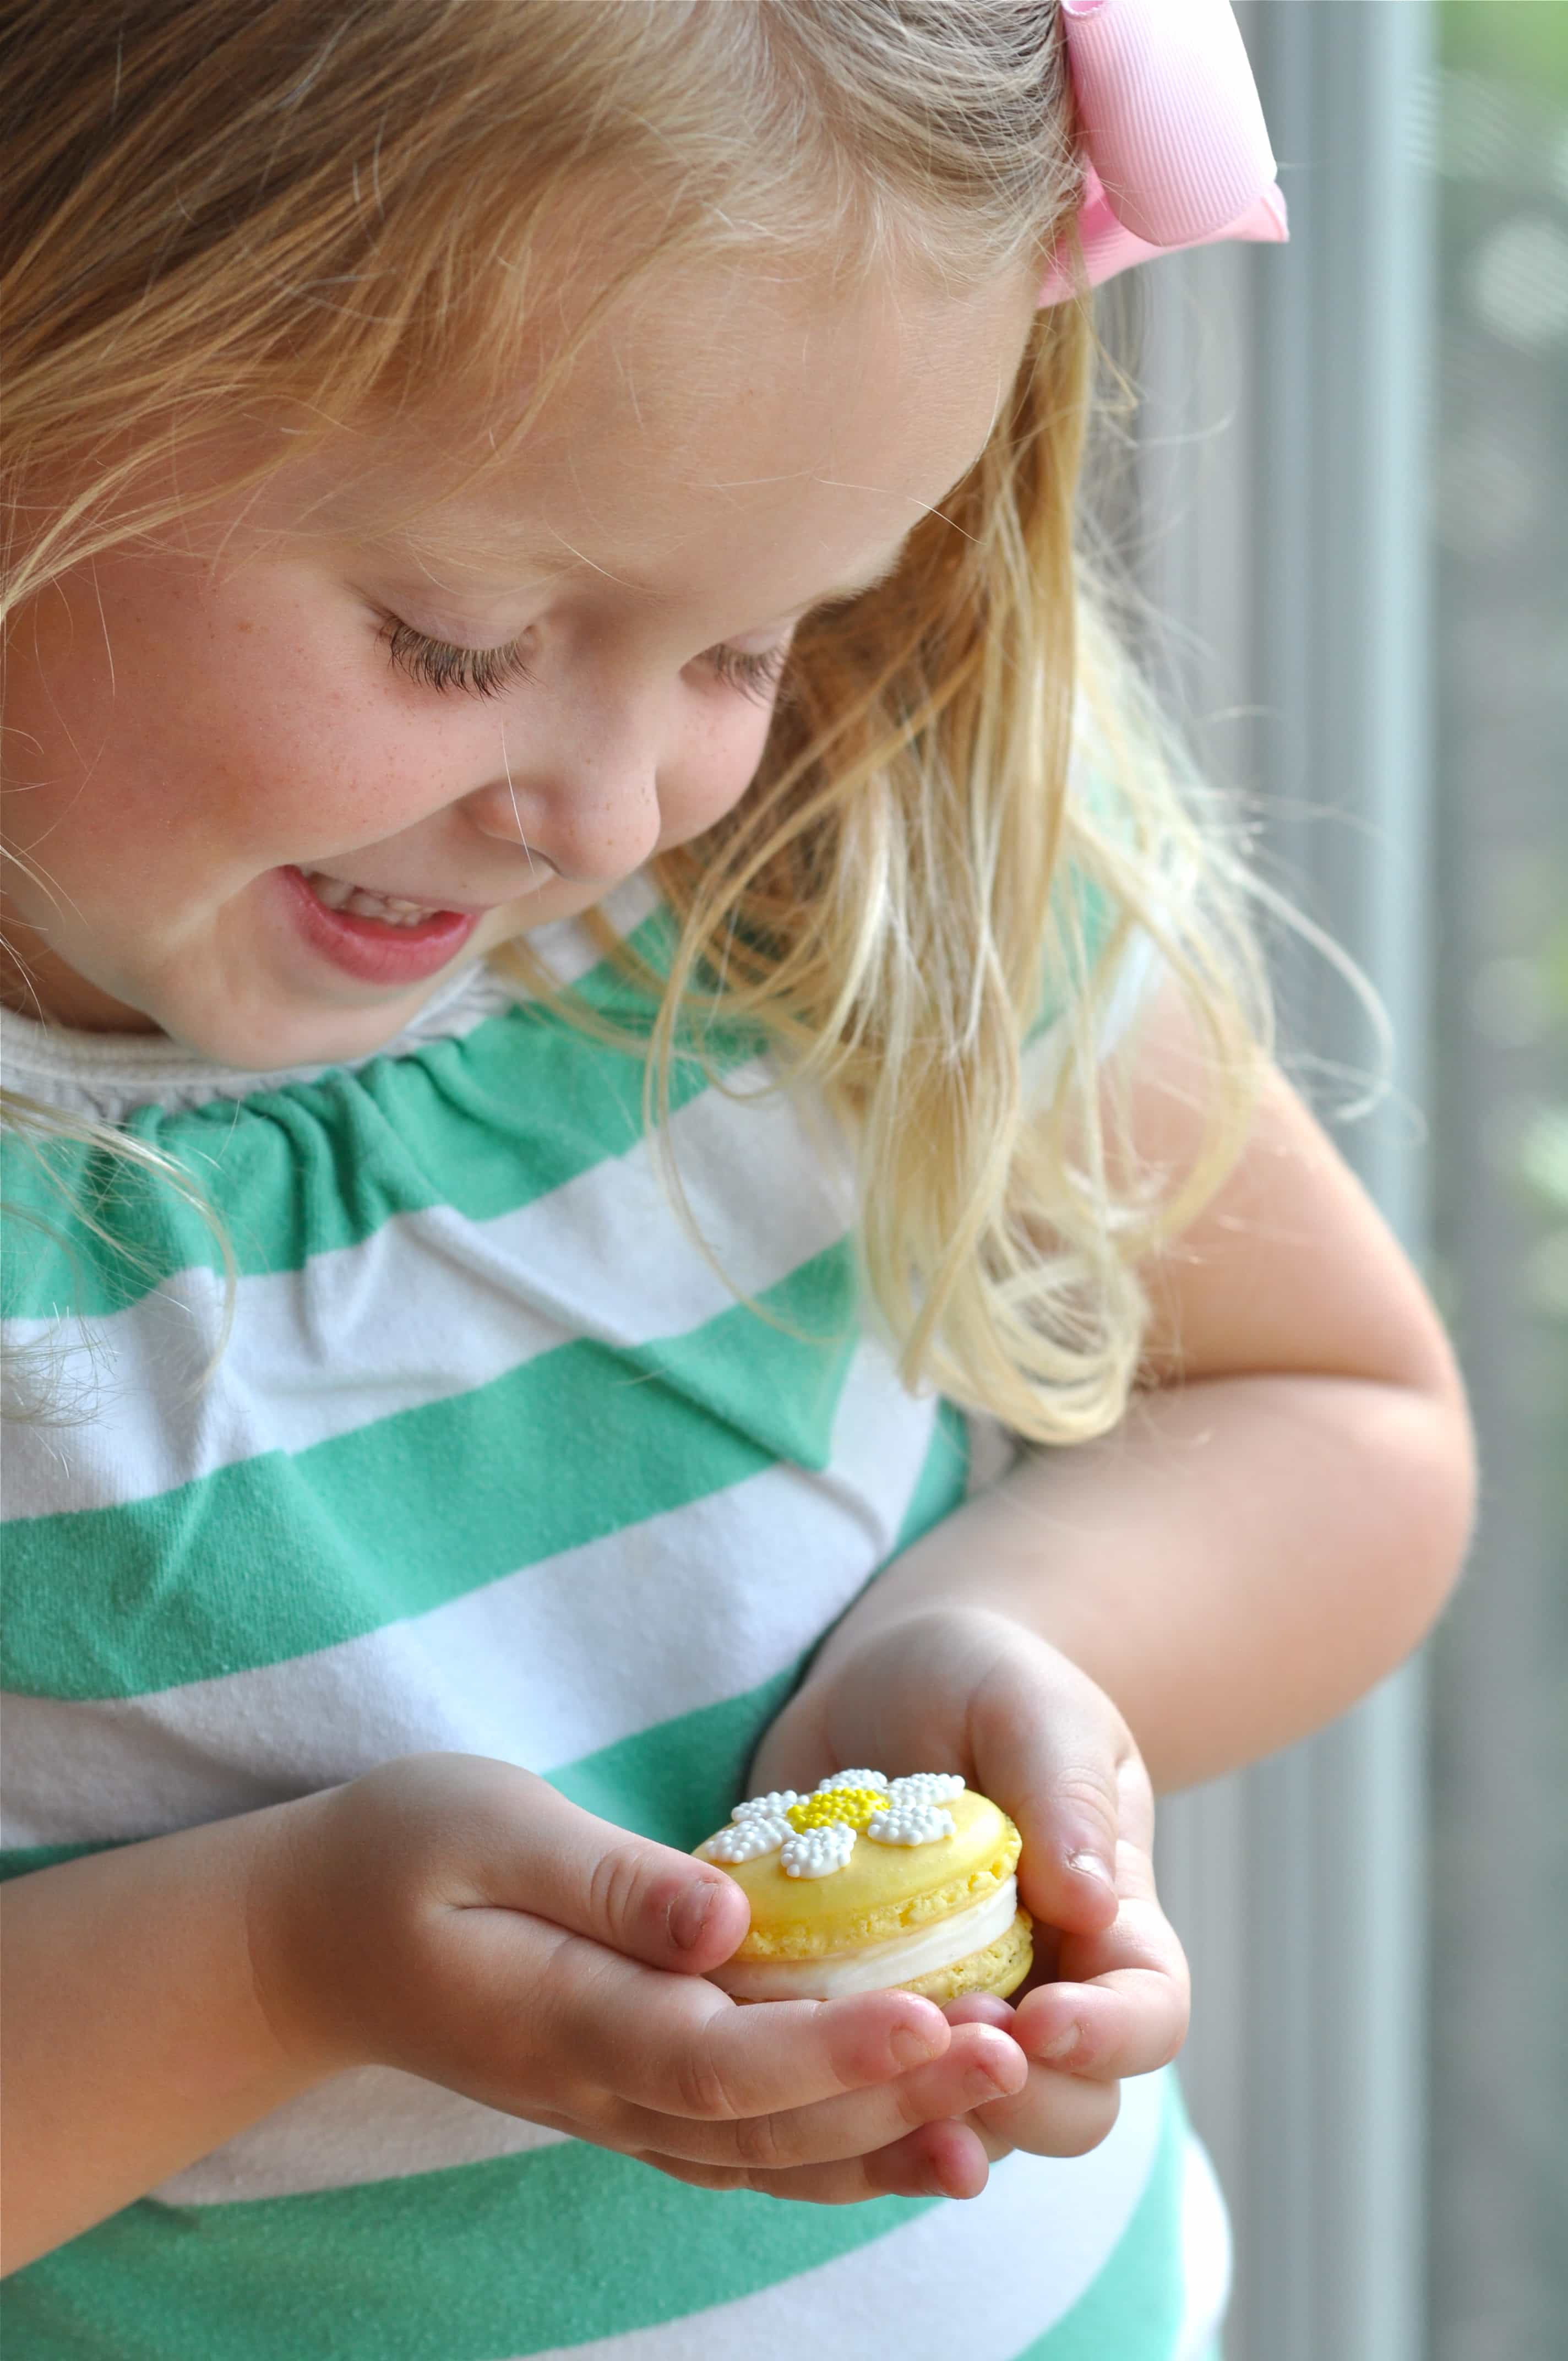 How To Make Sweet Springtime Daisy Macarons Best Friends For Frosting